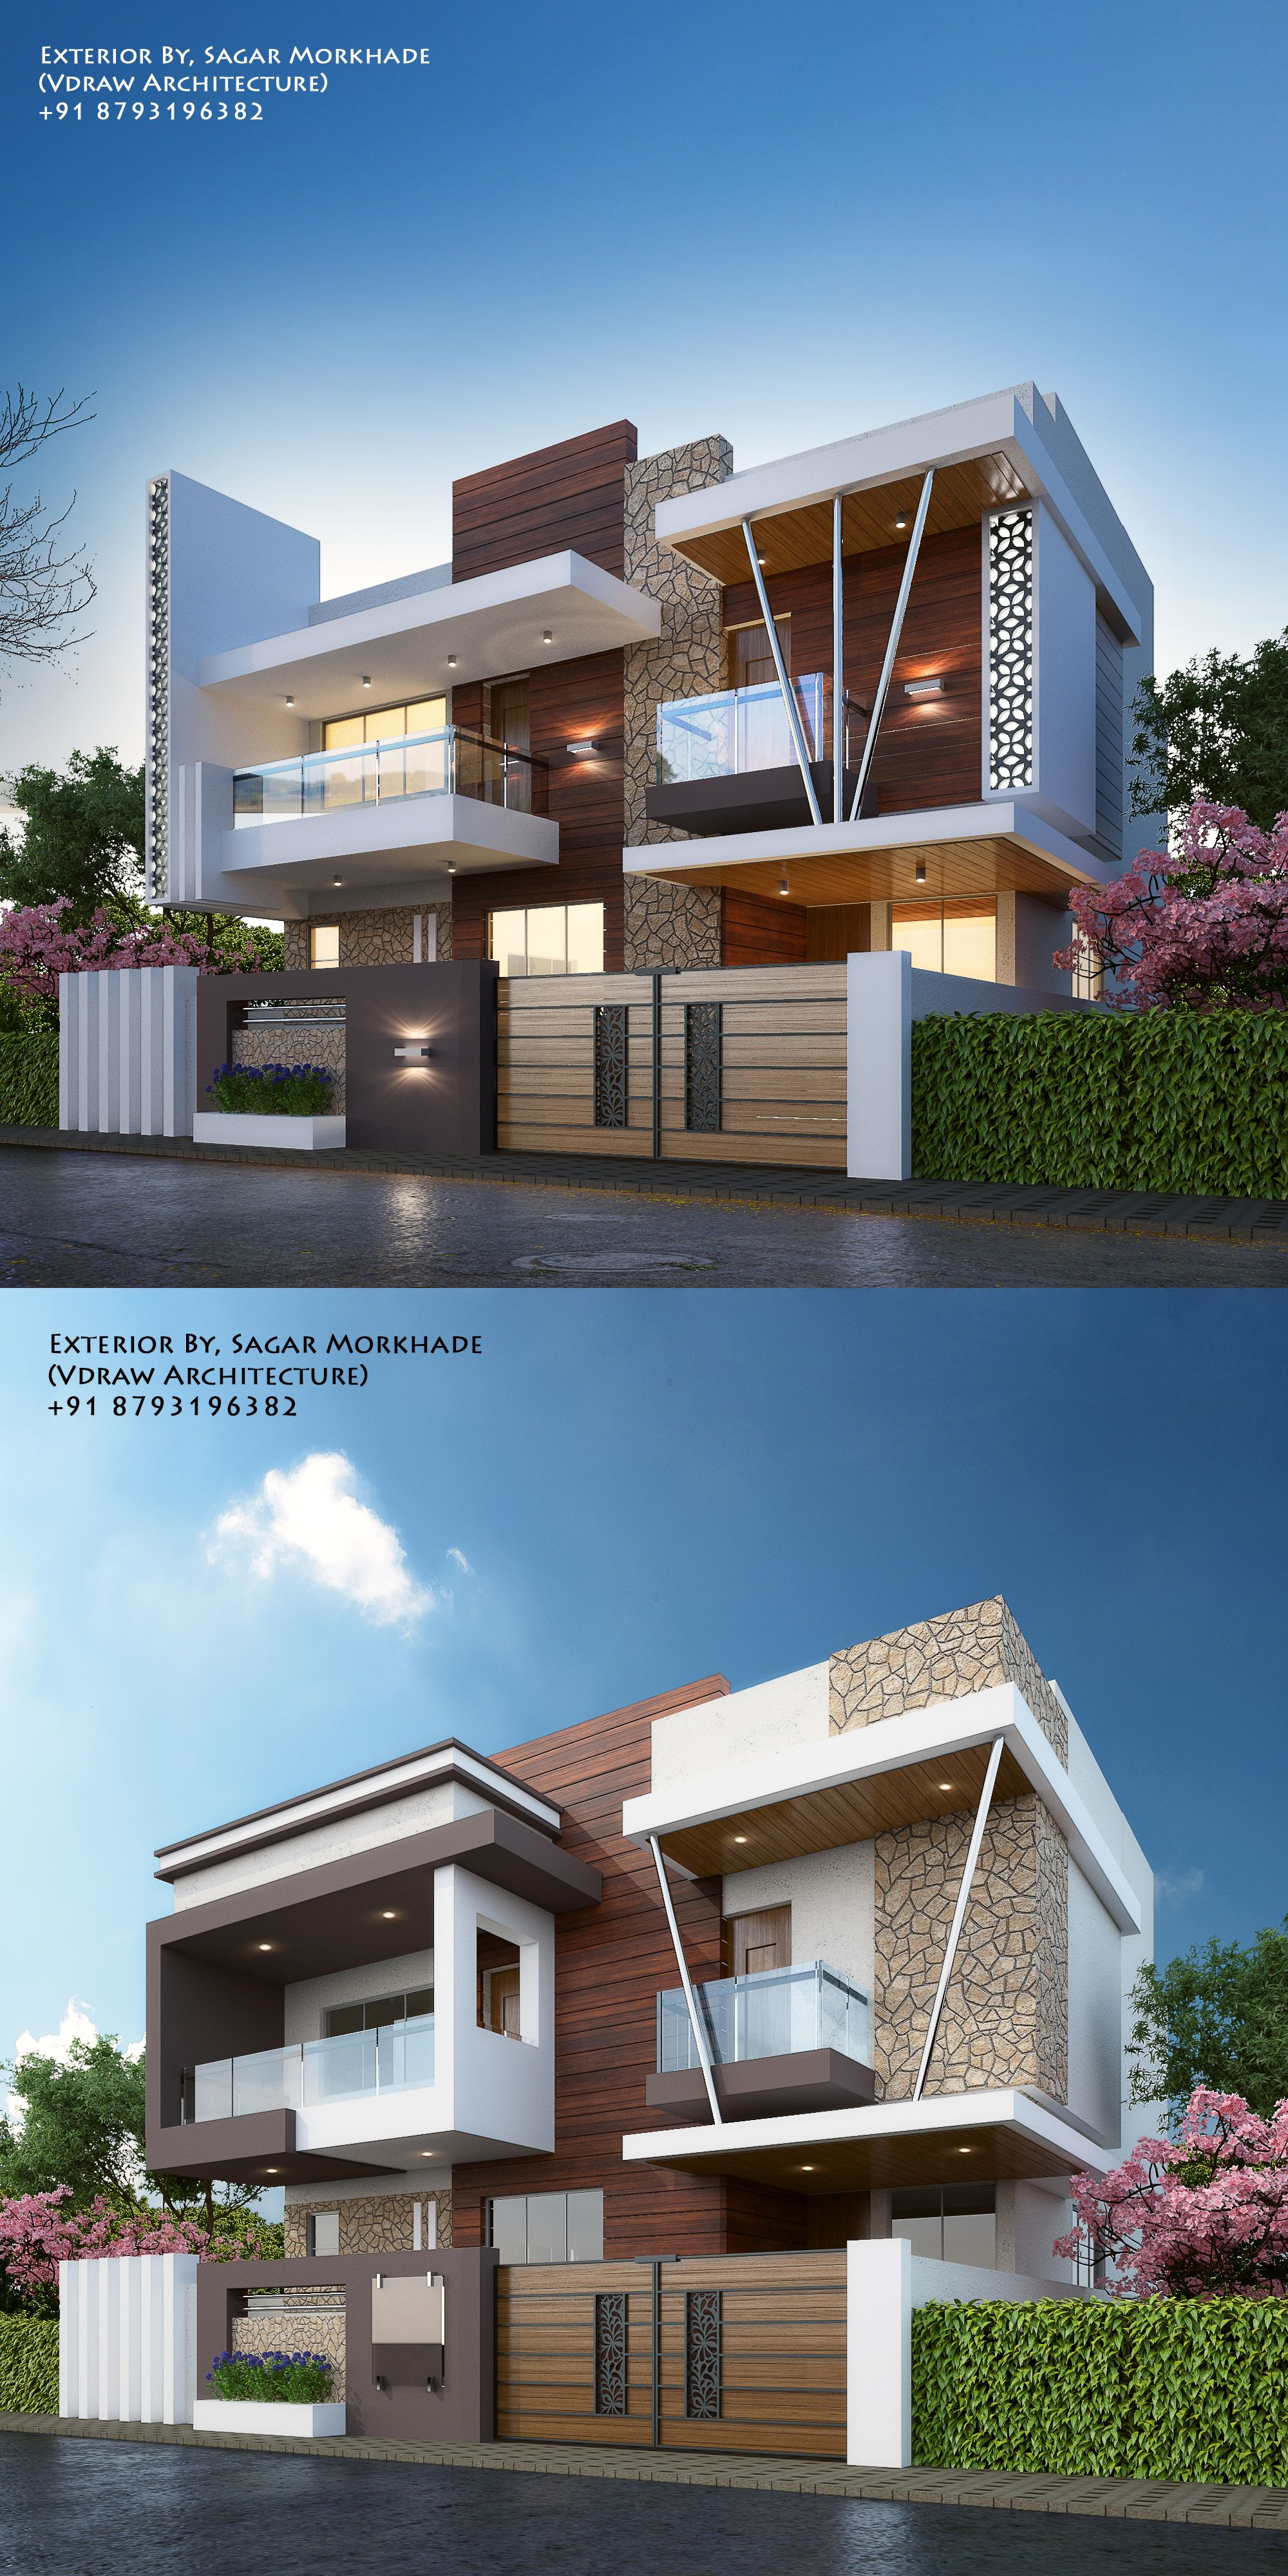 Modern house bungalow exterior by argar morkhade vdraw architecture also facade maison design in pinterest rh